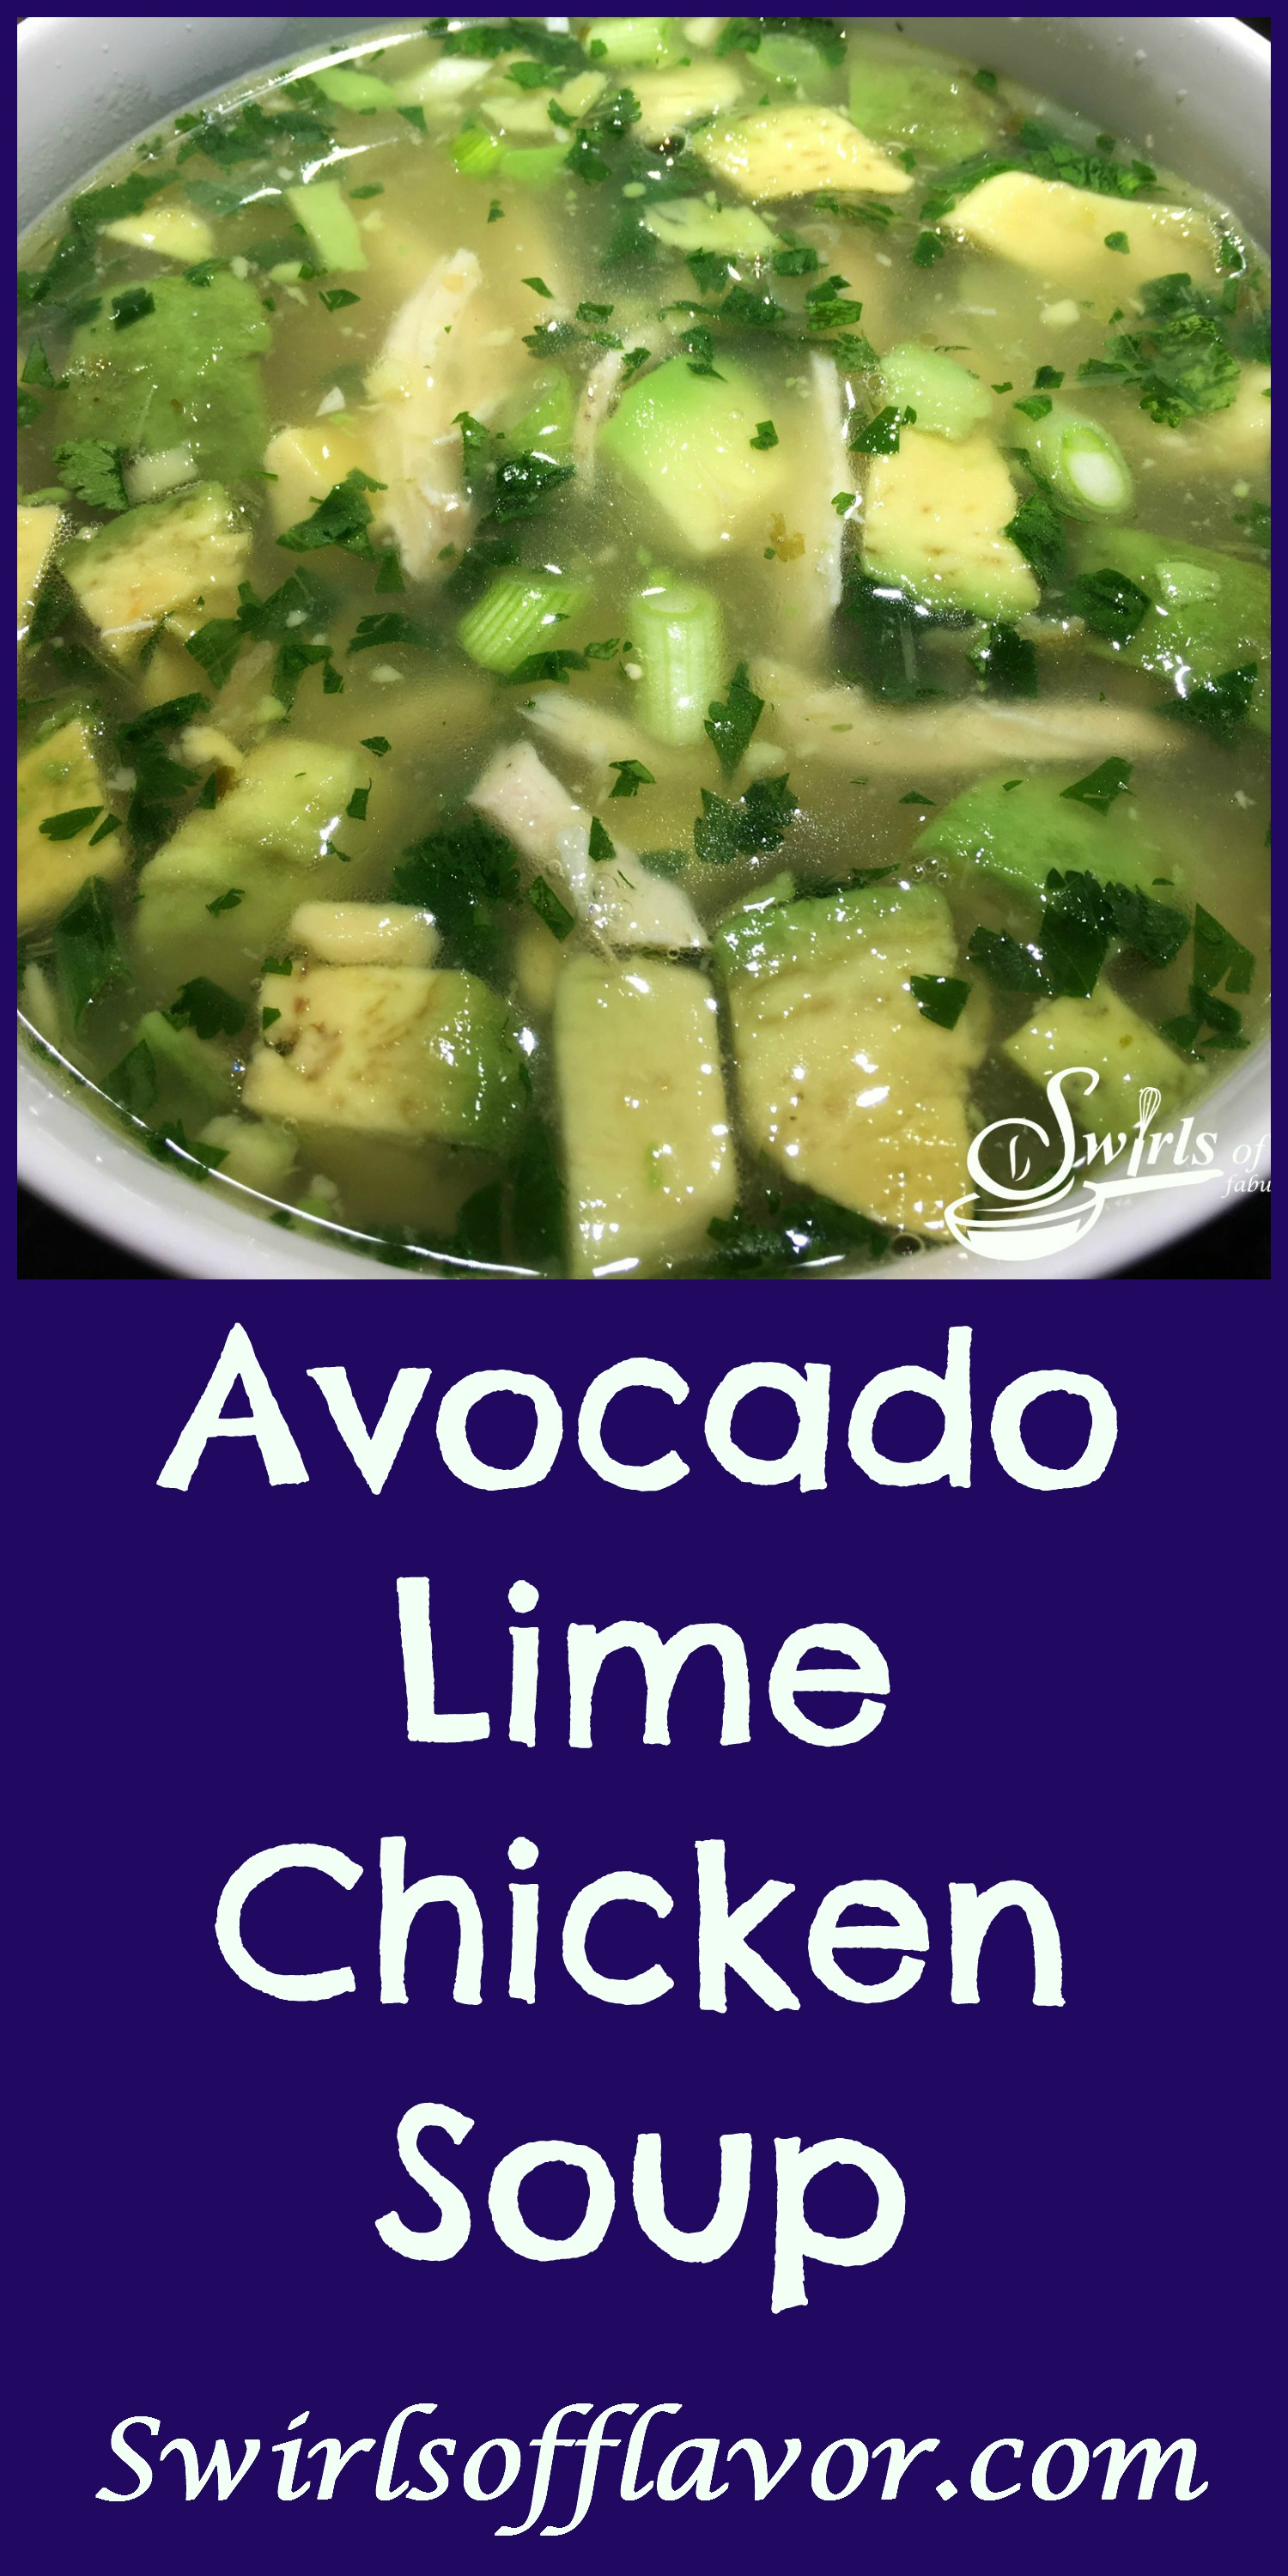 Chicken Soup just got a facelift! The fresh clean flavors of garlic, fresh ginger and lime and the buttery creaminess of chunks of avocados come together to create Avocado Lime Chicken Soup, a new comfort soup favorite!  #homemadesoup #Soup #Avocado #Chicken #ChickenSoup #Under30Minutes #swirlsofflavor #easyrecipe #whole30